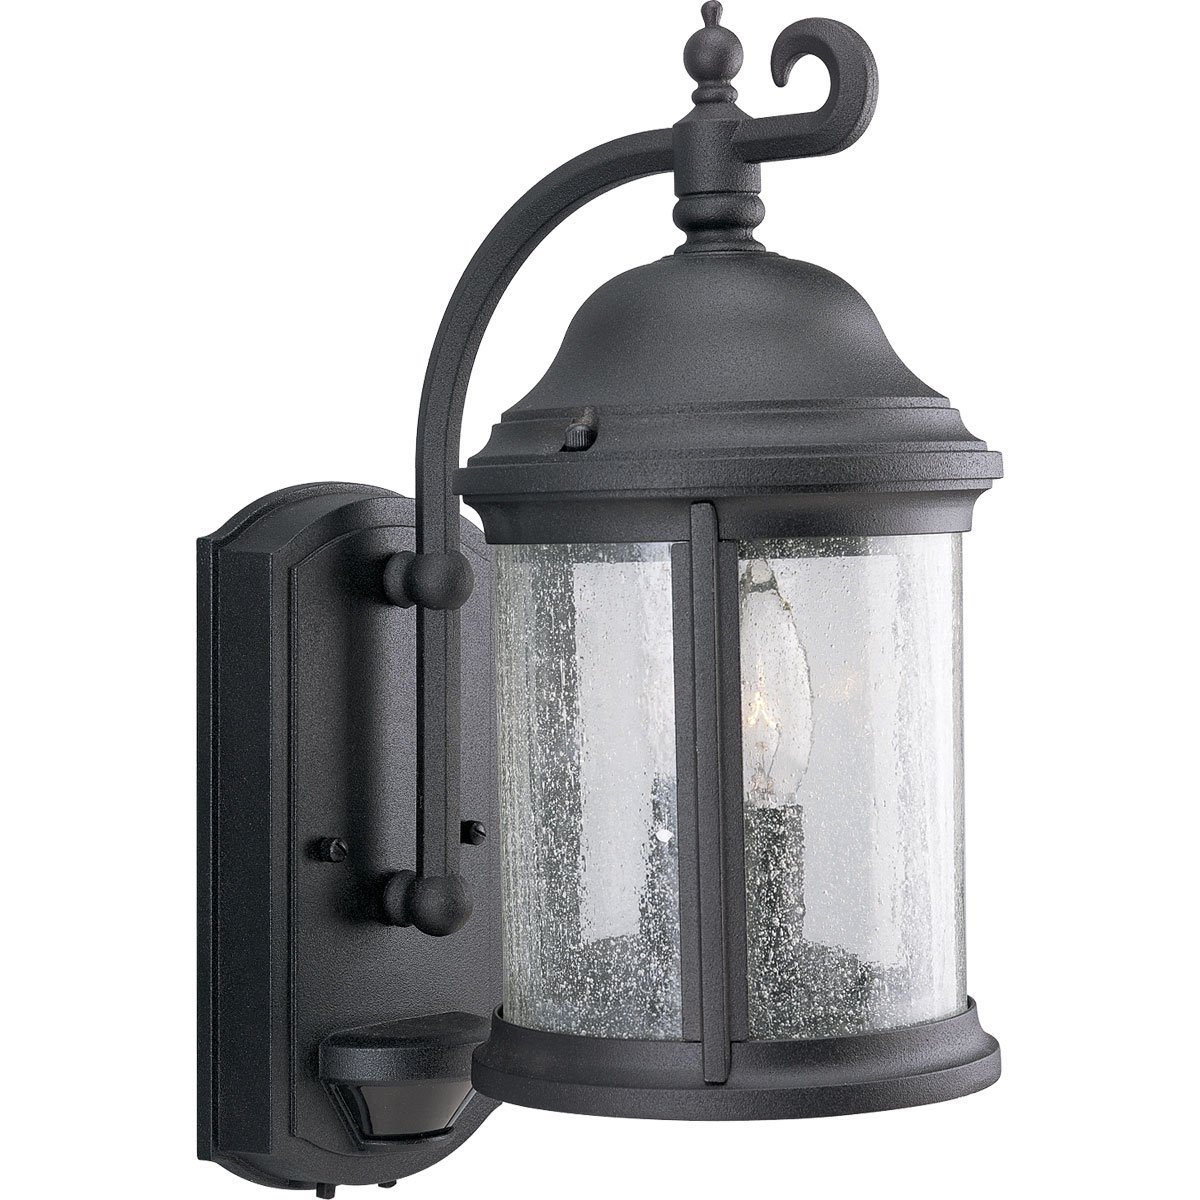 Progress lighting p5854 31 2 light ashmore collection wall lantern progress lighting p5854 31 2 light ashmore collection wall lantern with motion sensor textured black wall porch lights amazon aloadofball Choice Image